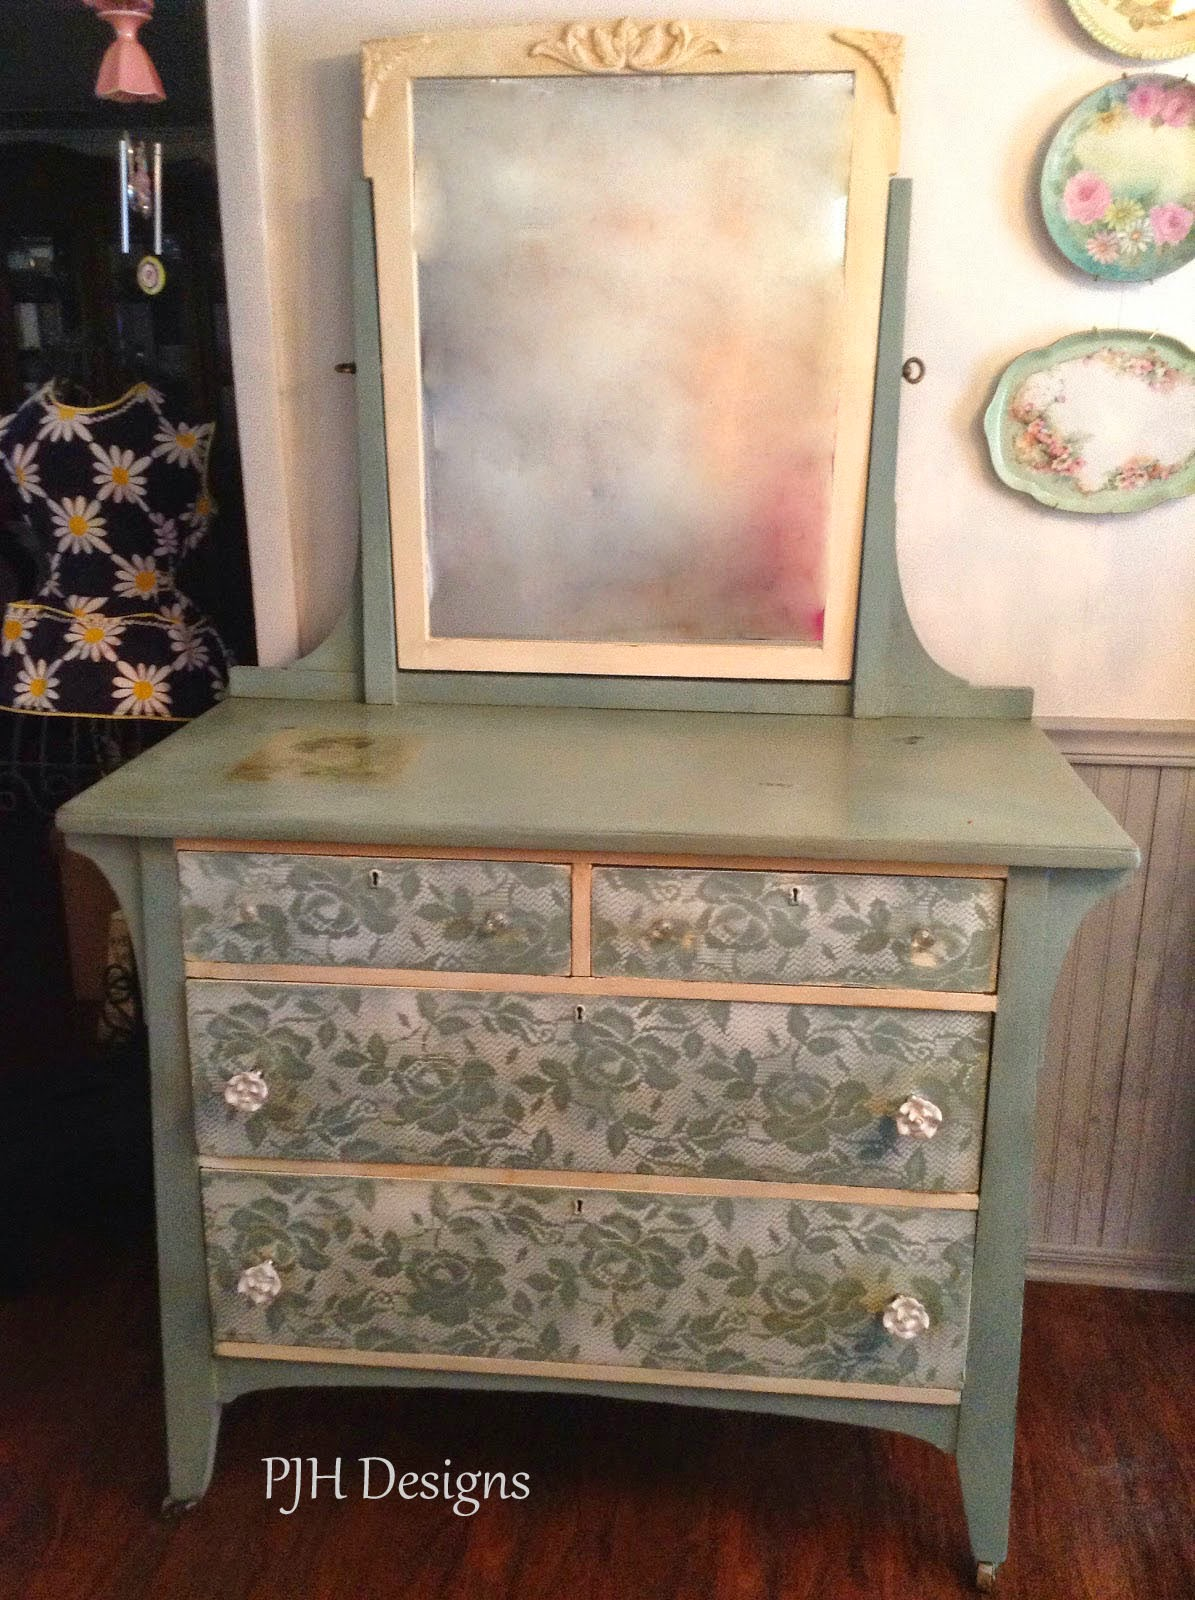 Pjh Designs Hand Painted Antique Furniture Lovely Quot Duck